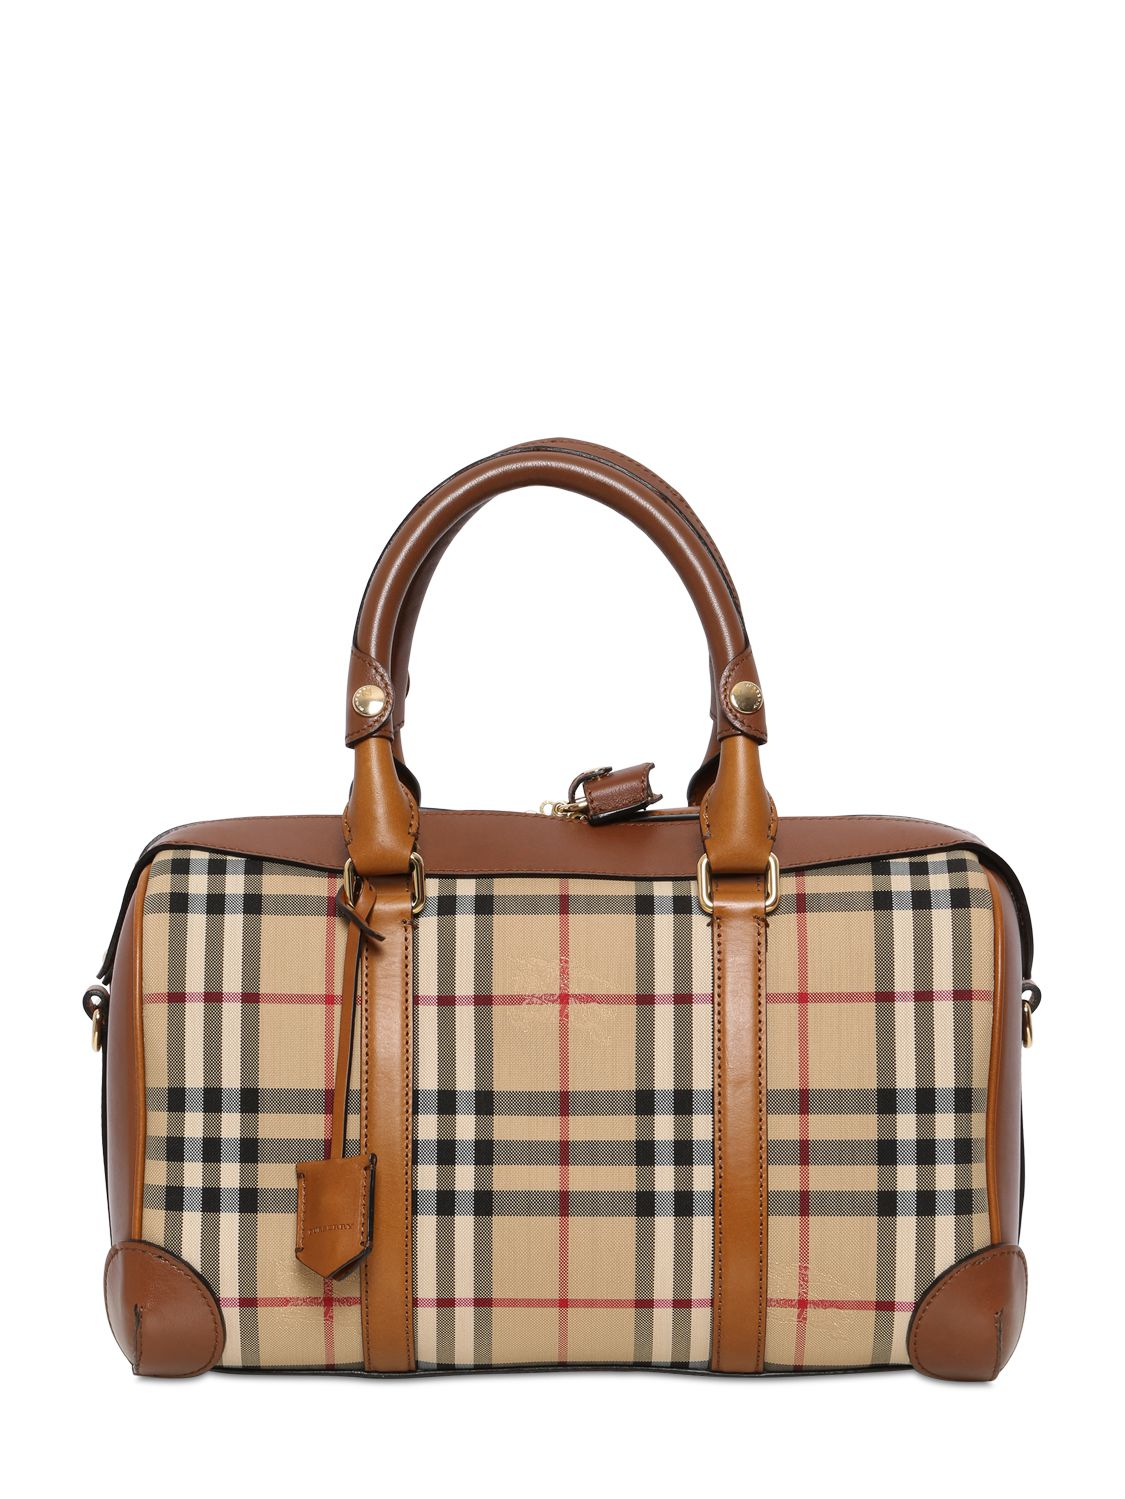 Burberry Medium Alchester Bridle House Check Bag in Brown - Lyst 4df8a89d91b22